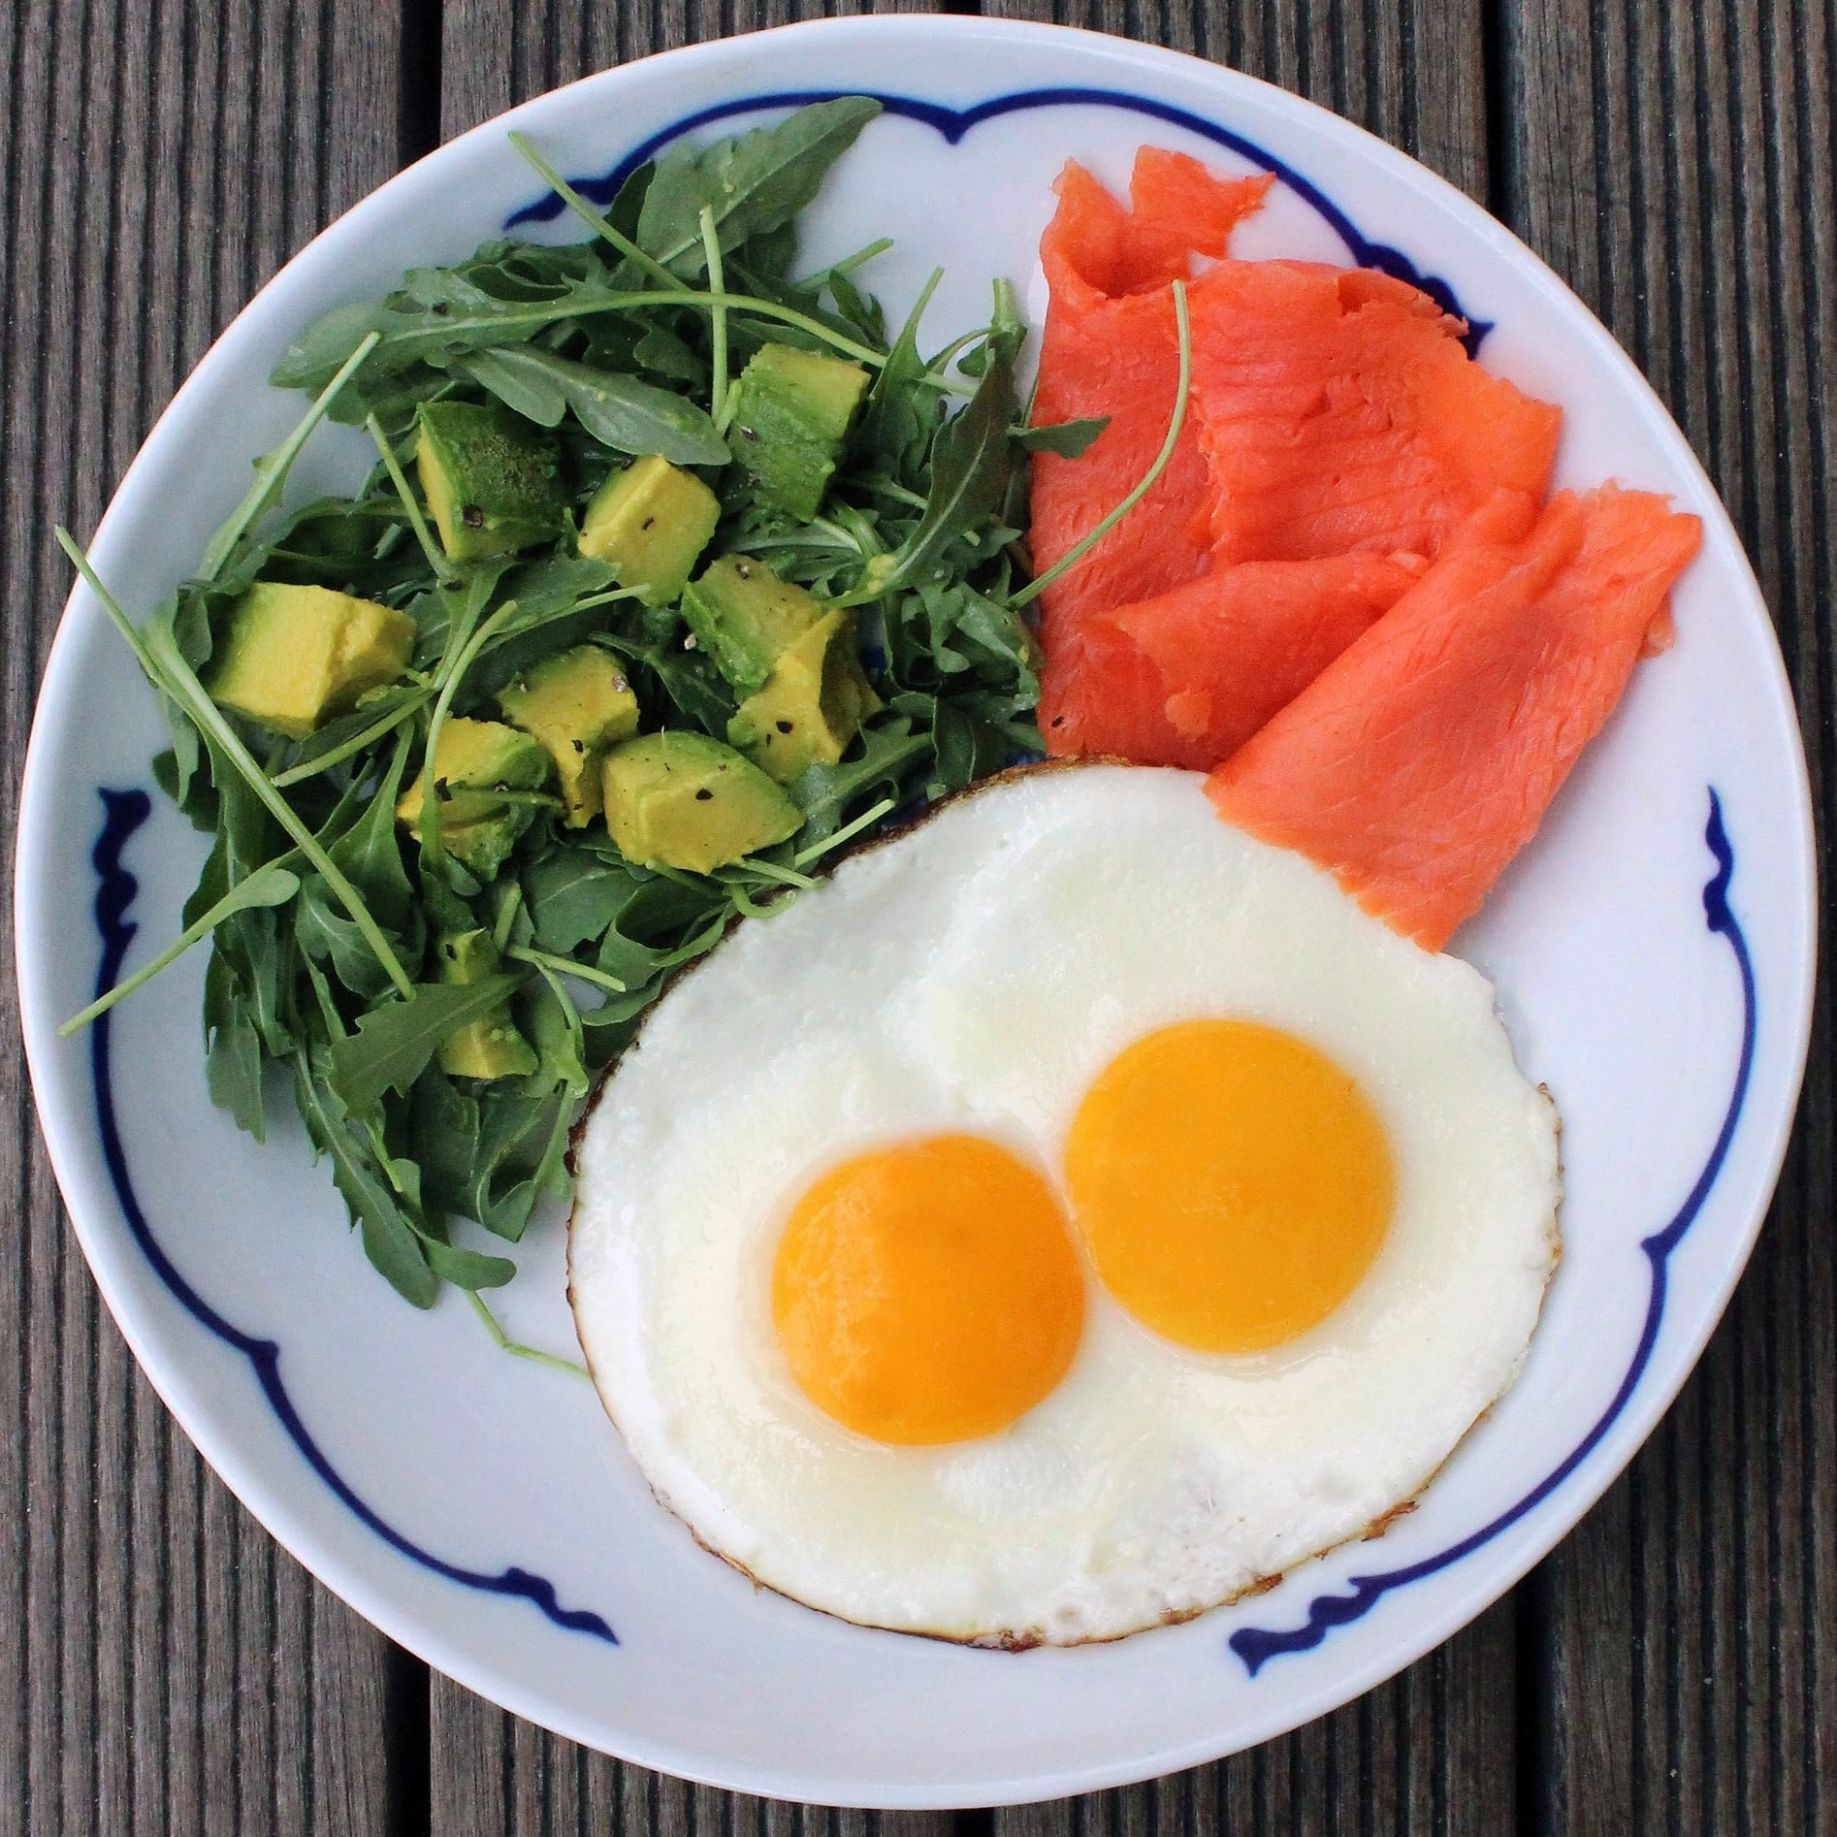 Low-Carb, High-Protein Breakfasts | POPSUGAR Fitness - Breakfast Recipes Rich In Protein